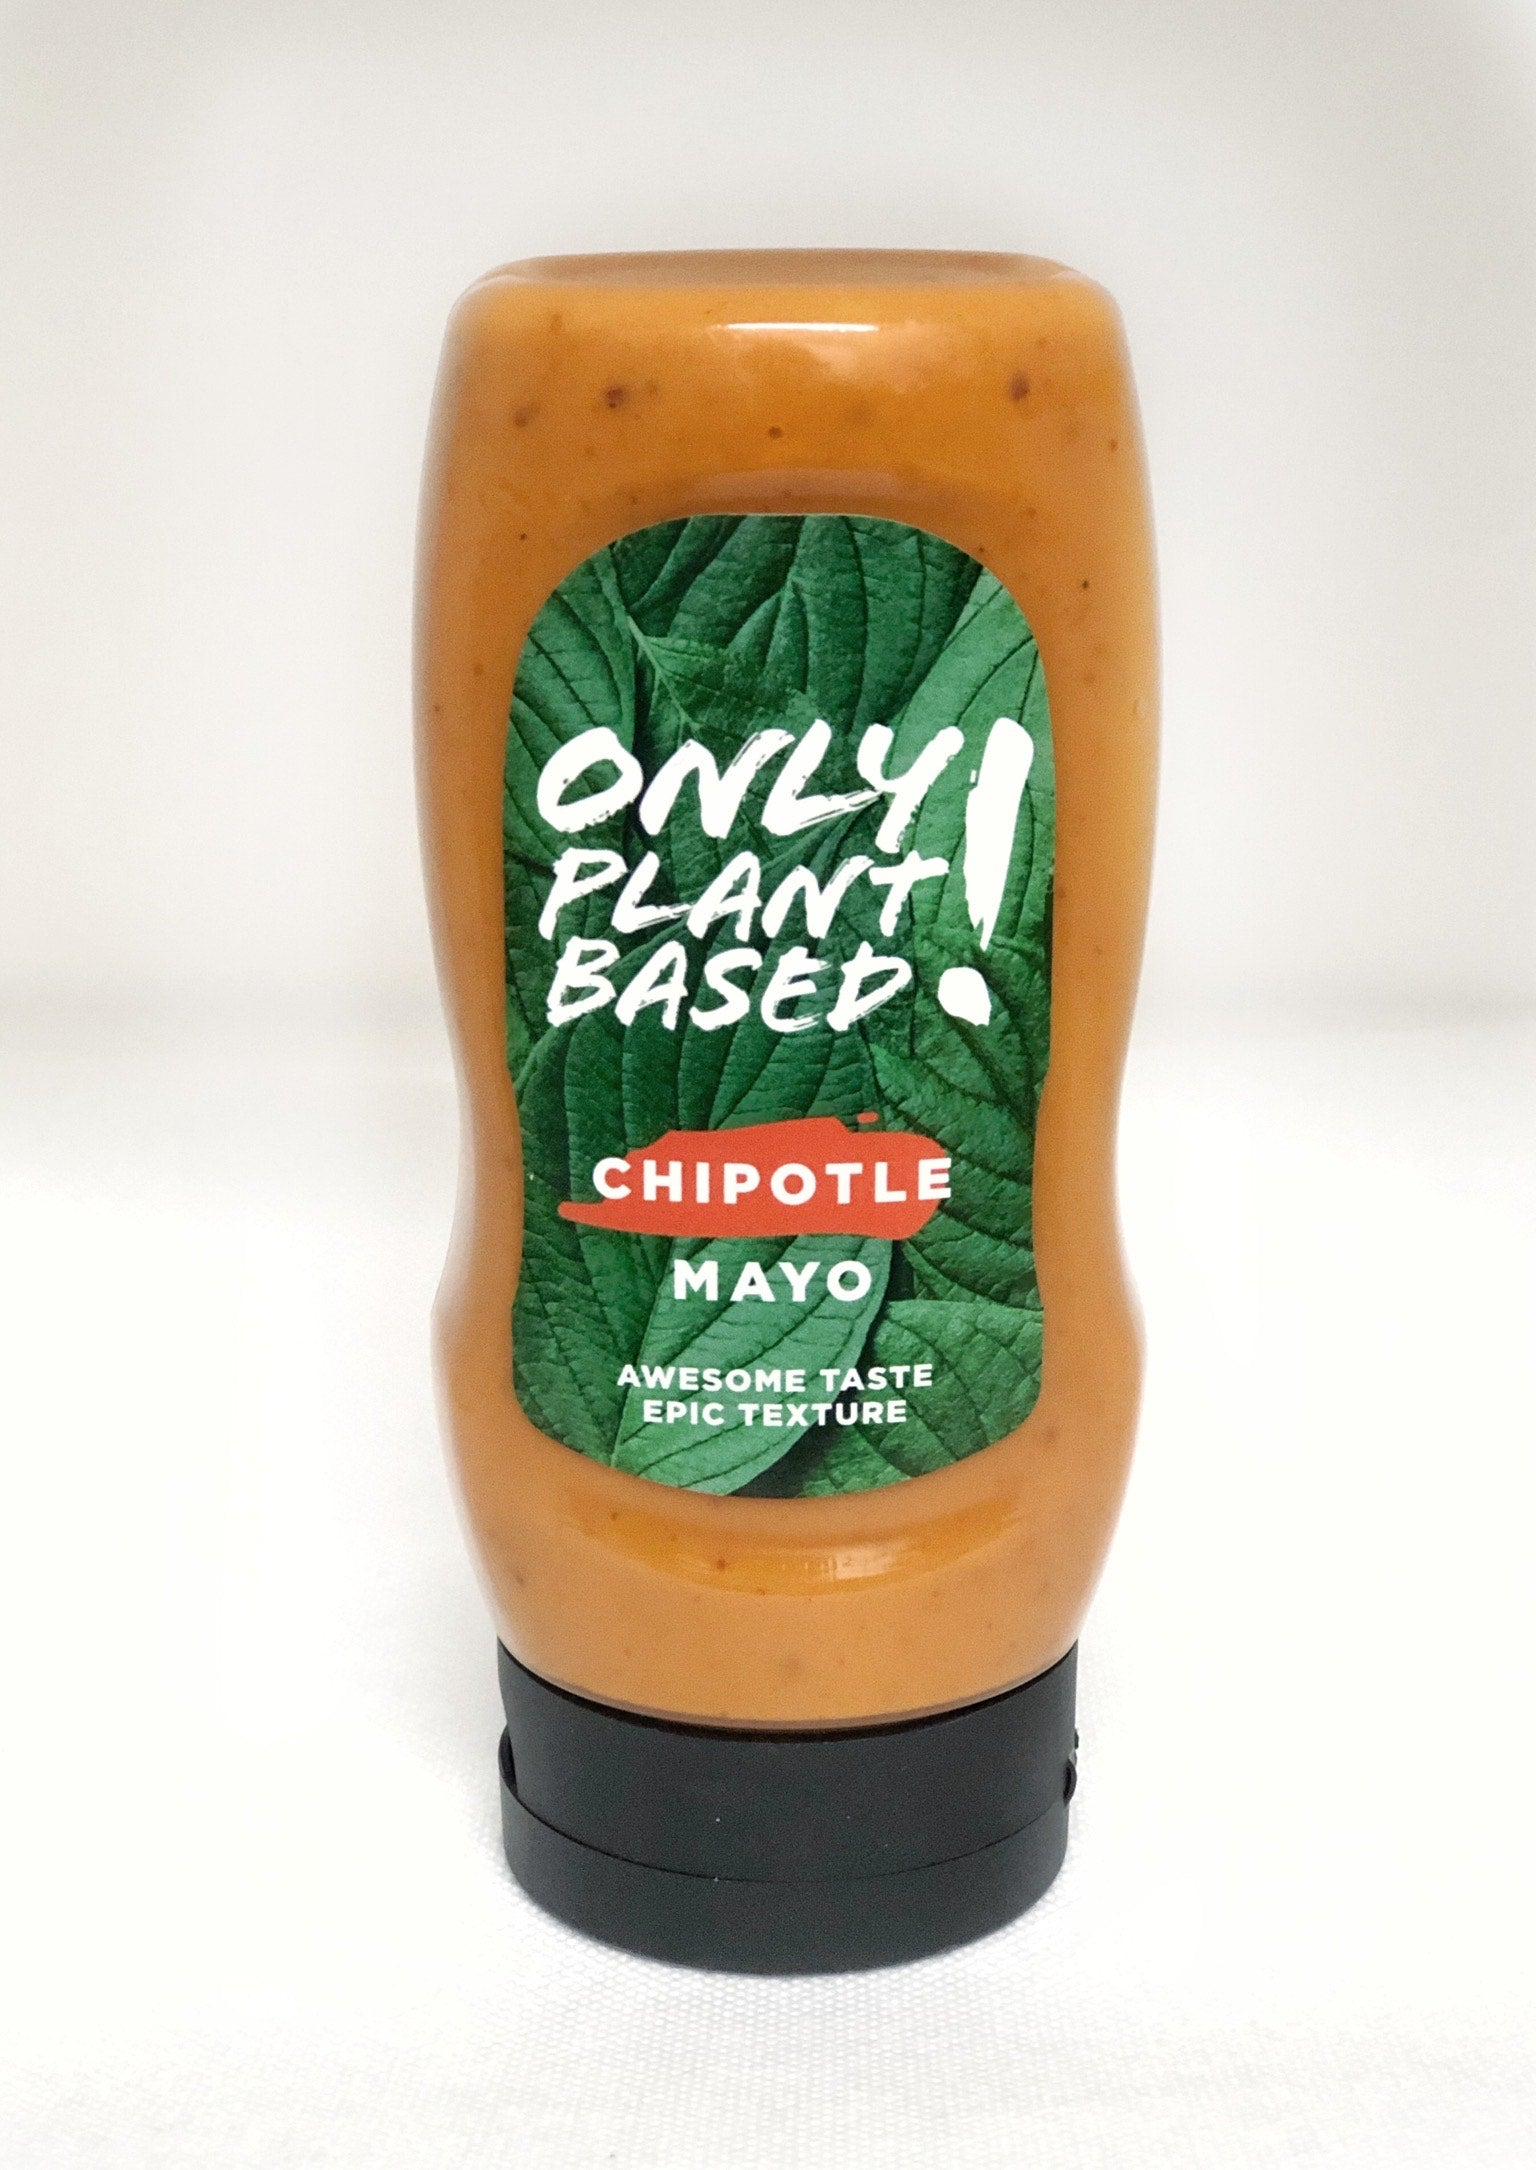 Only Plant Based Chipotle Mayo 325ml Promo Price 2 50 Greenbay